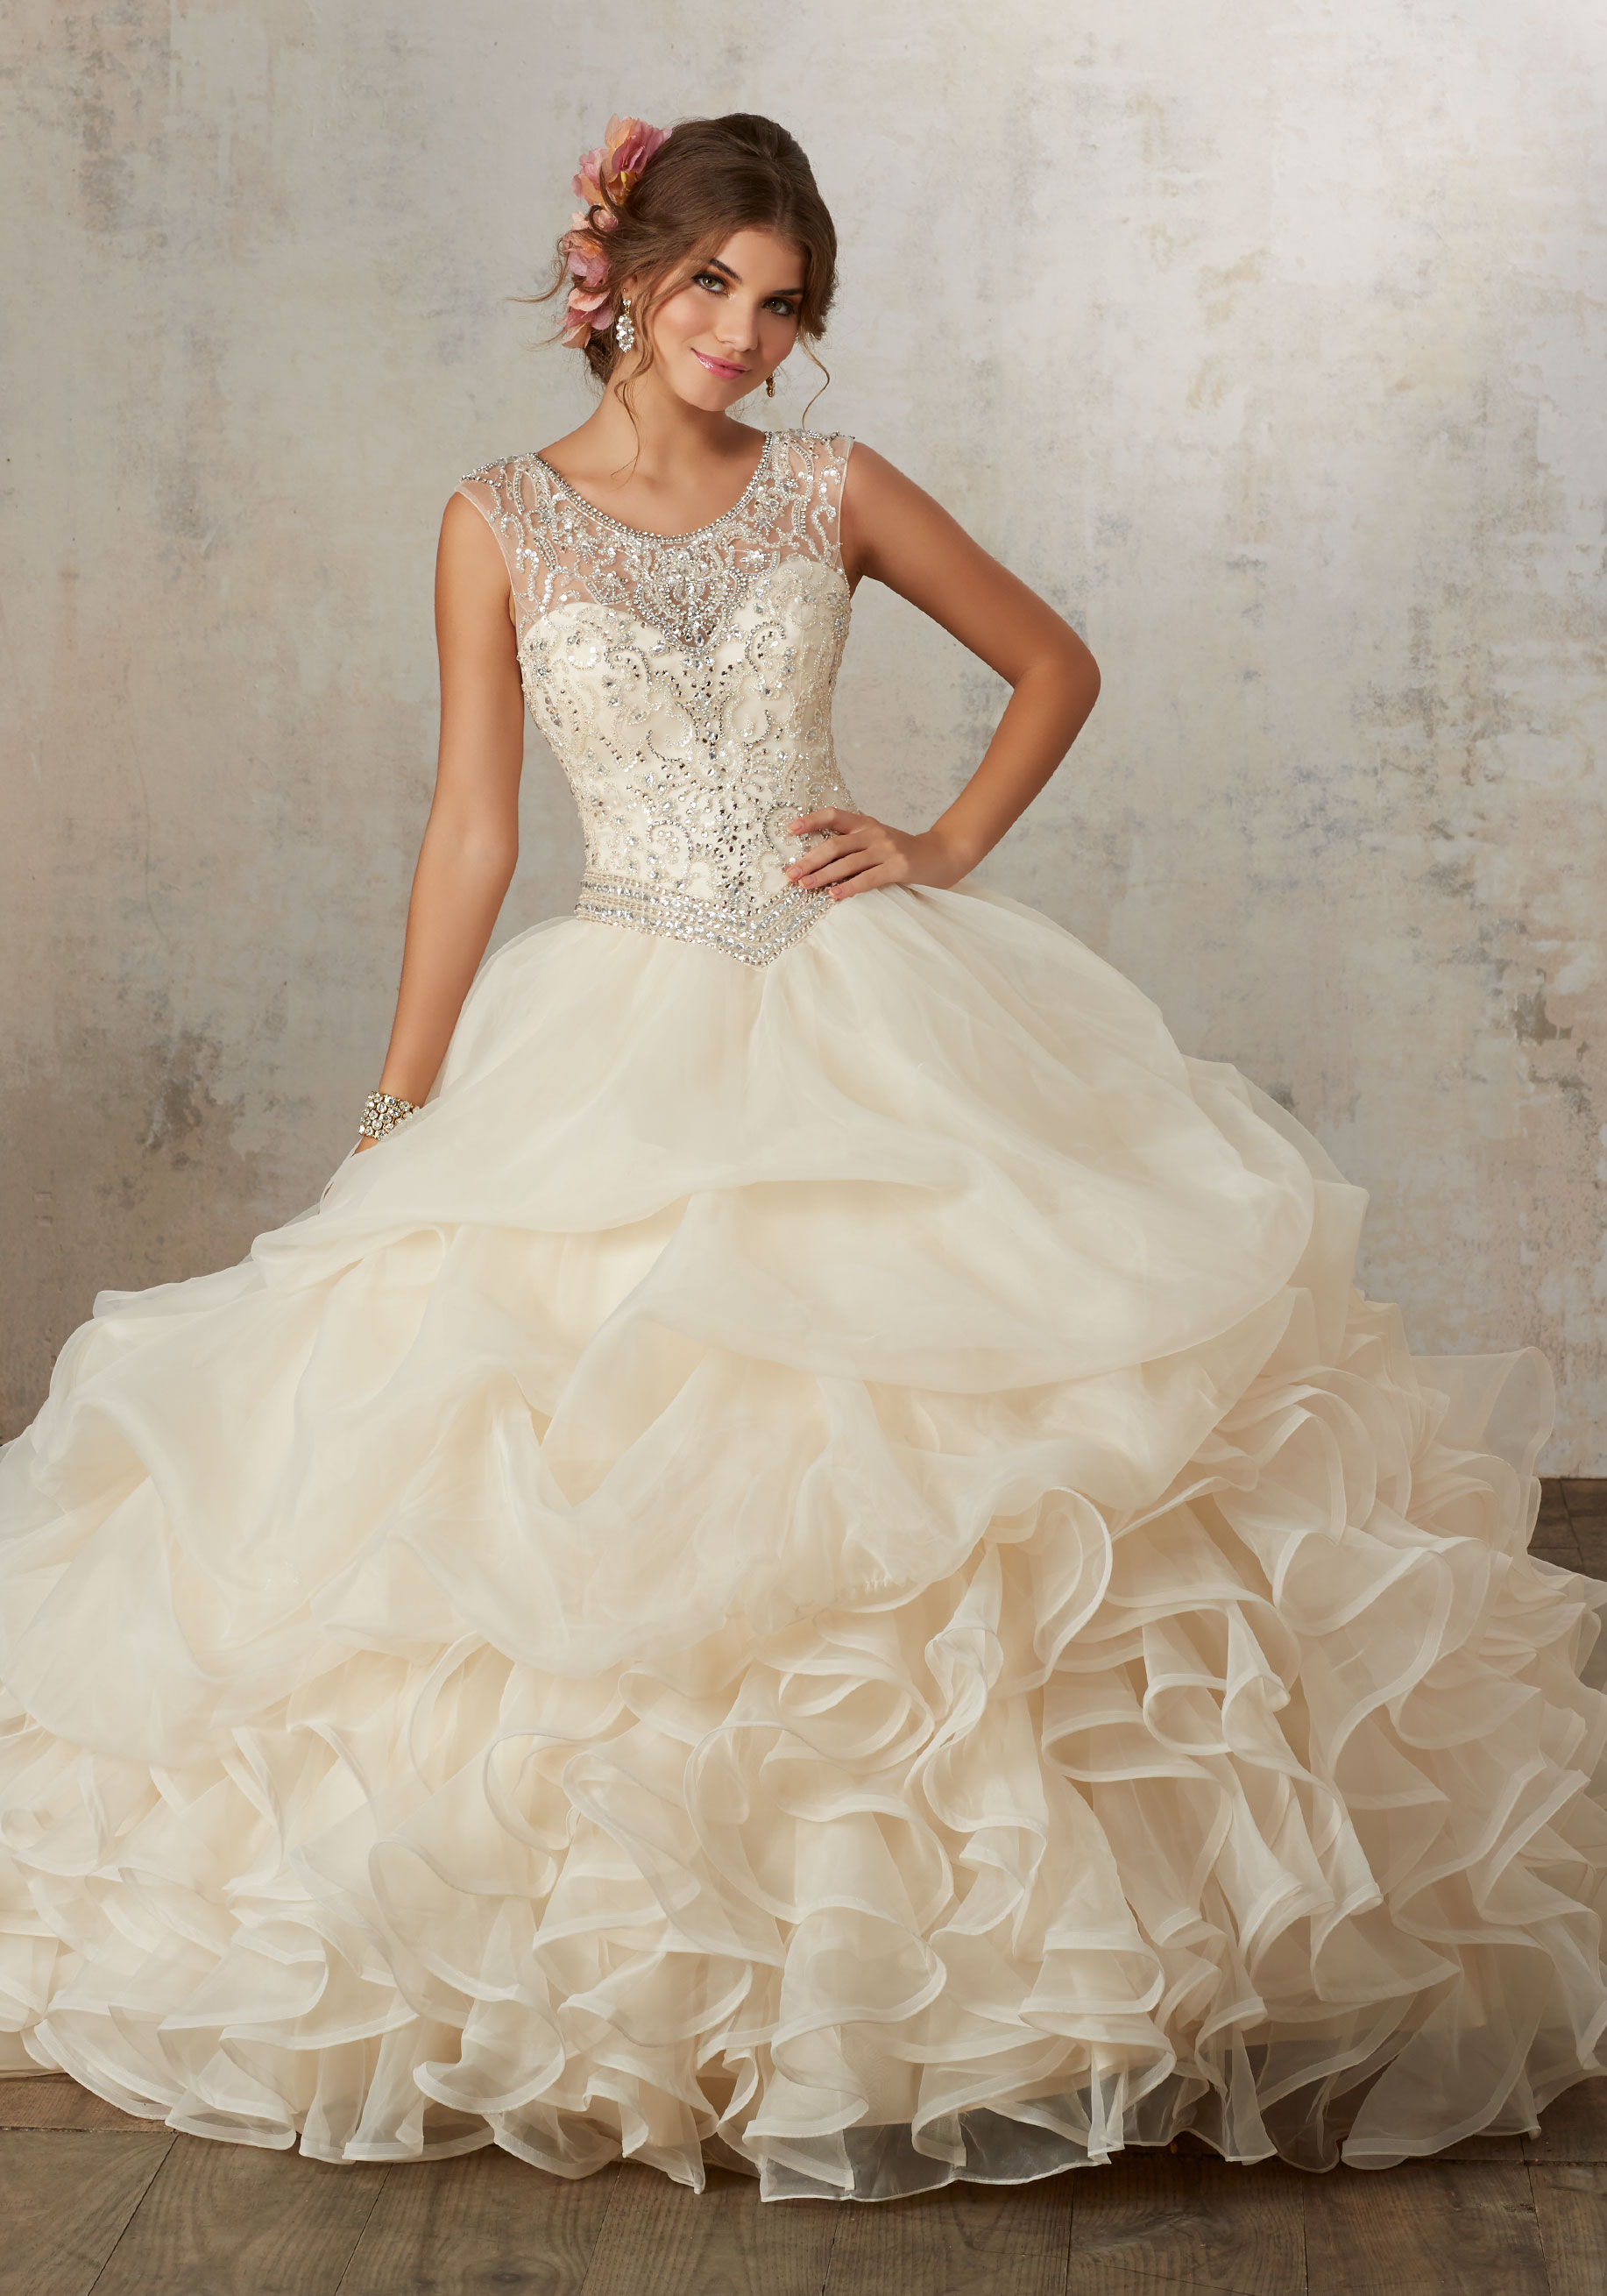 552787a3ae0b Home / Quinceanera Dresses / Vizcaya Collection / Jeweled Beading on a  Ruffled Organza Ballgown